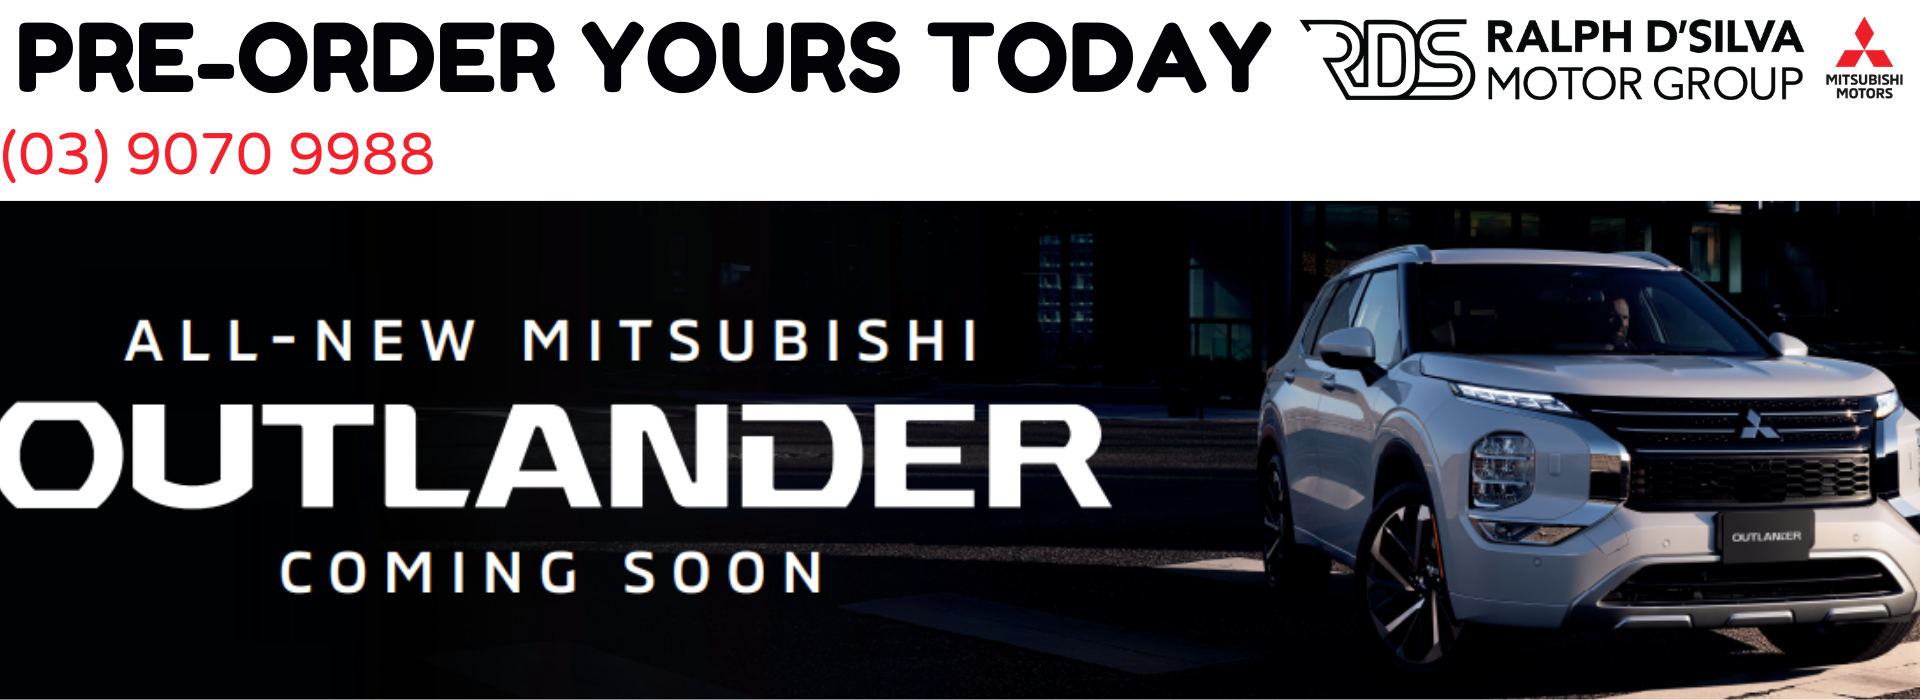 Pre order your new outlander today